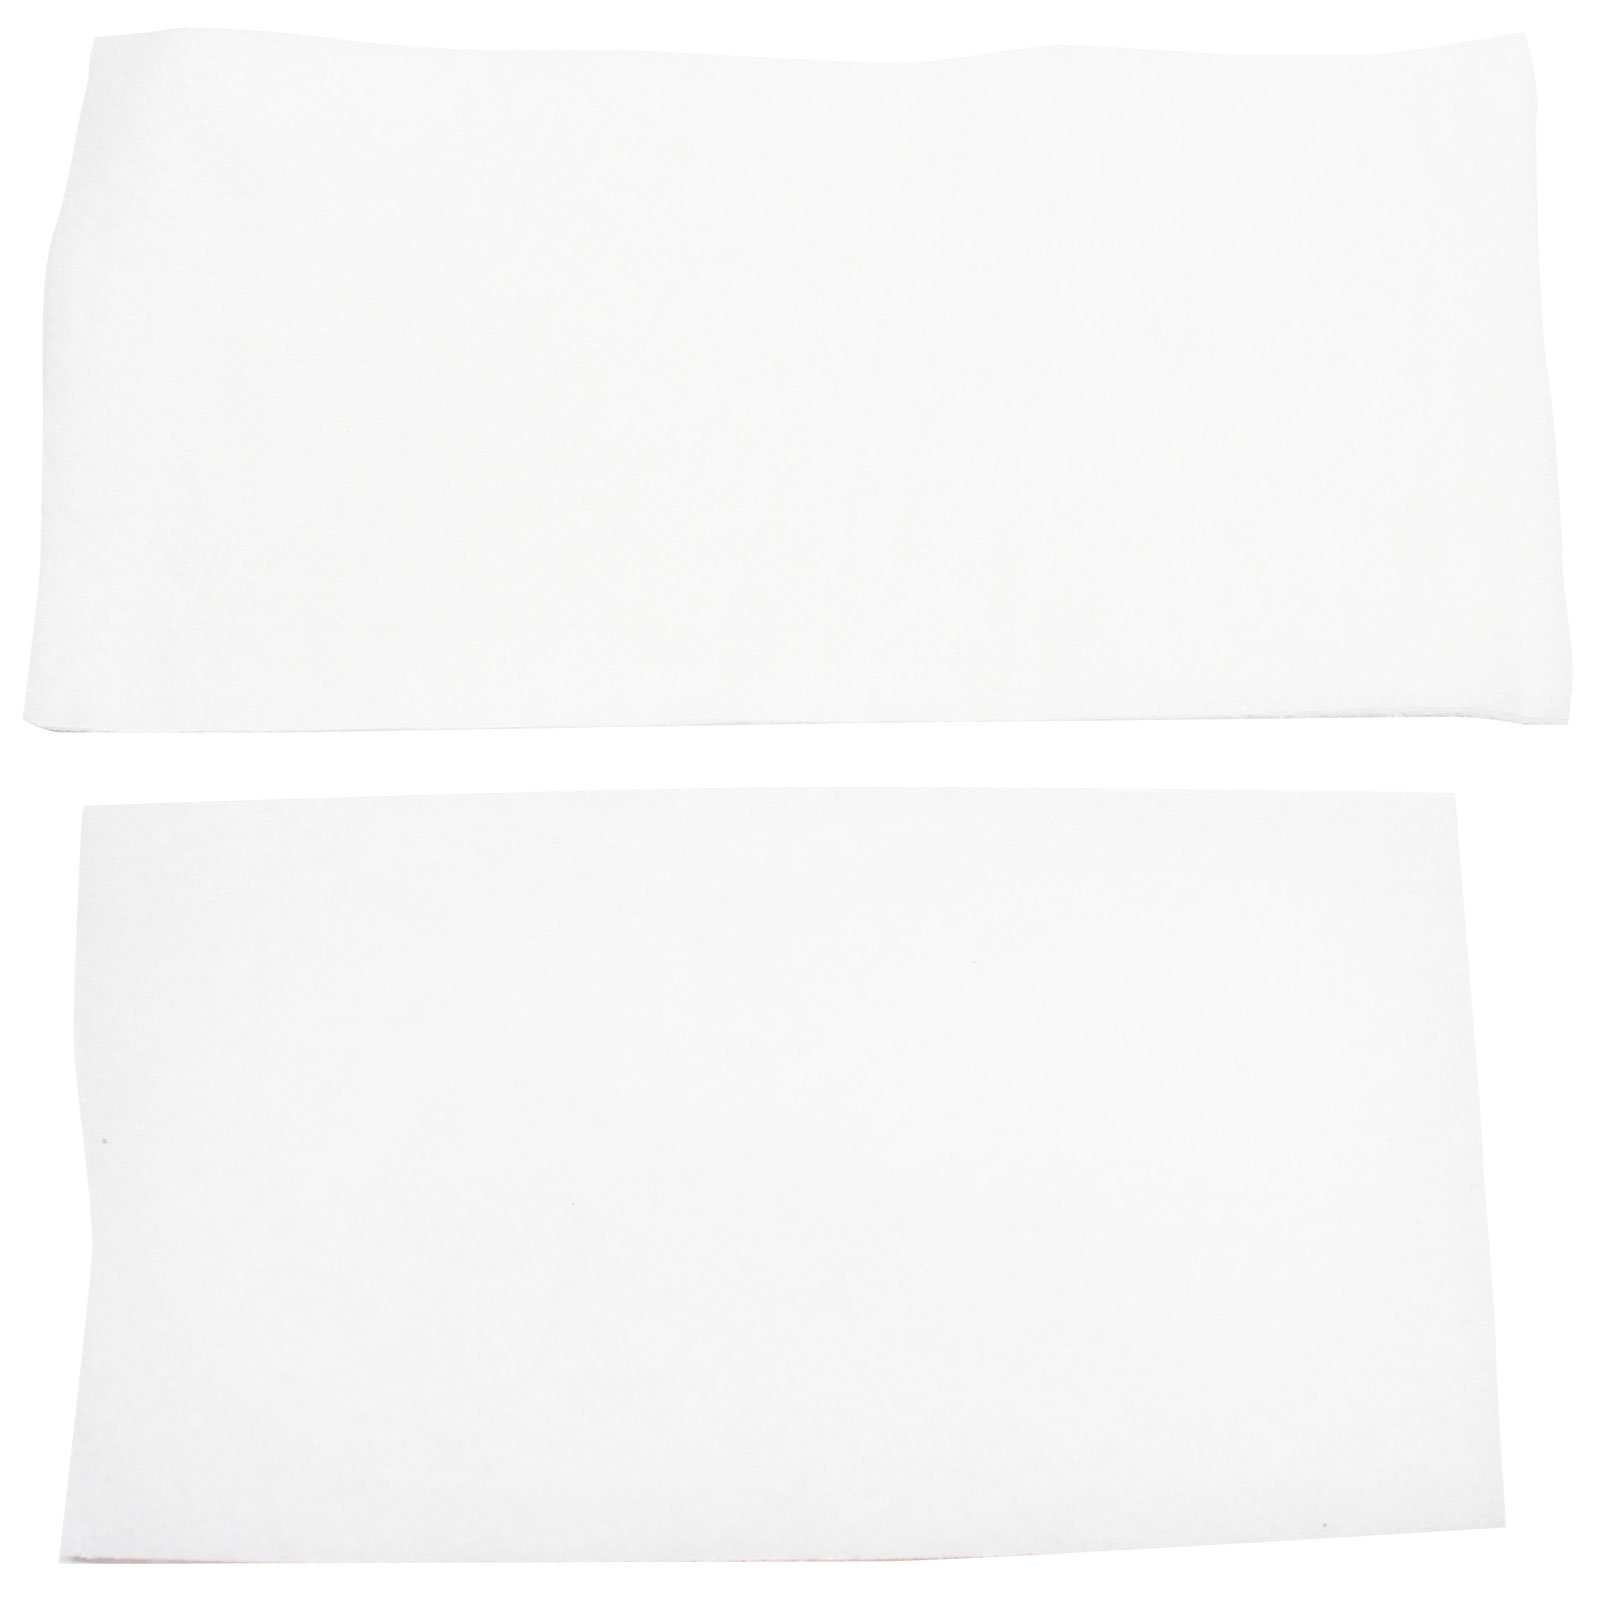 S548i S516 S318 S336i 2 Micro /& 1 HEPA Filters for Miele S514 2 Vacuum Bags